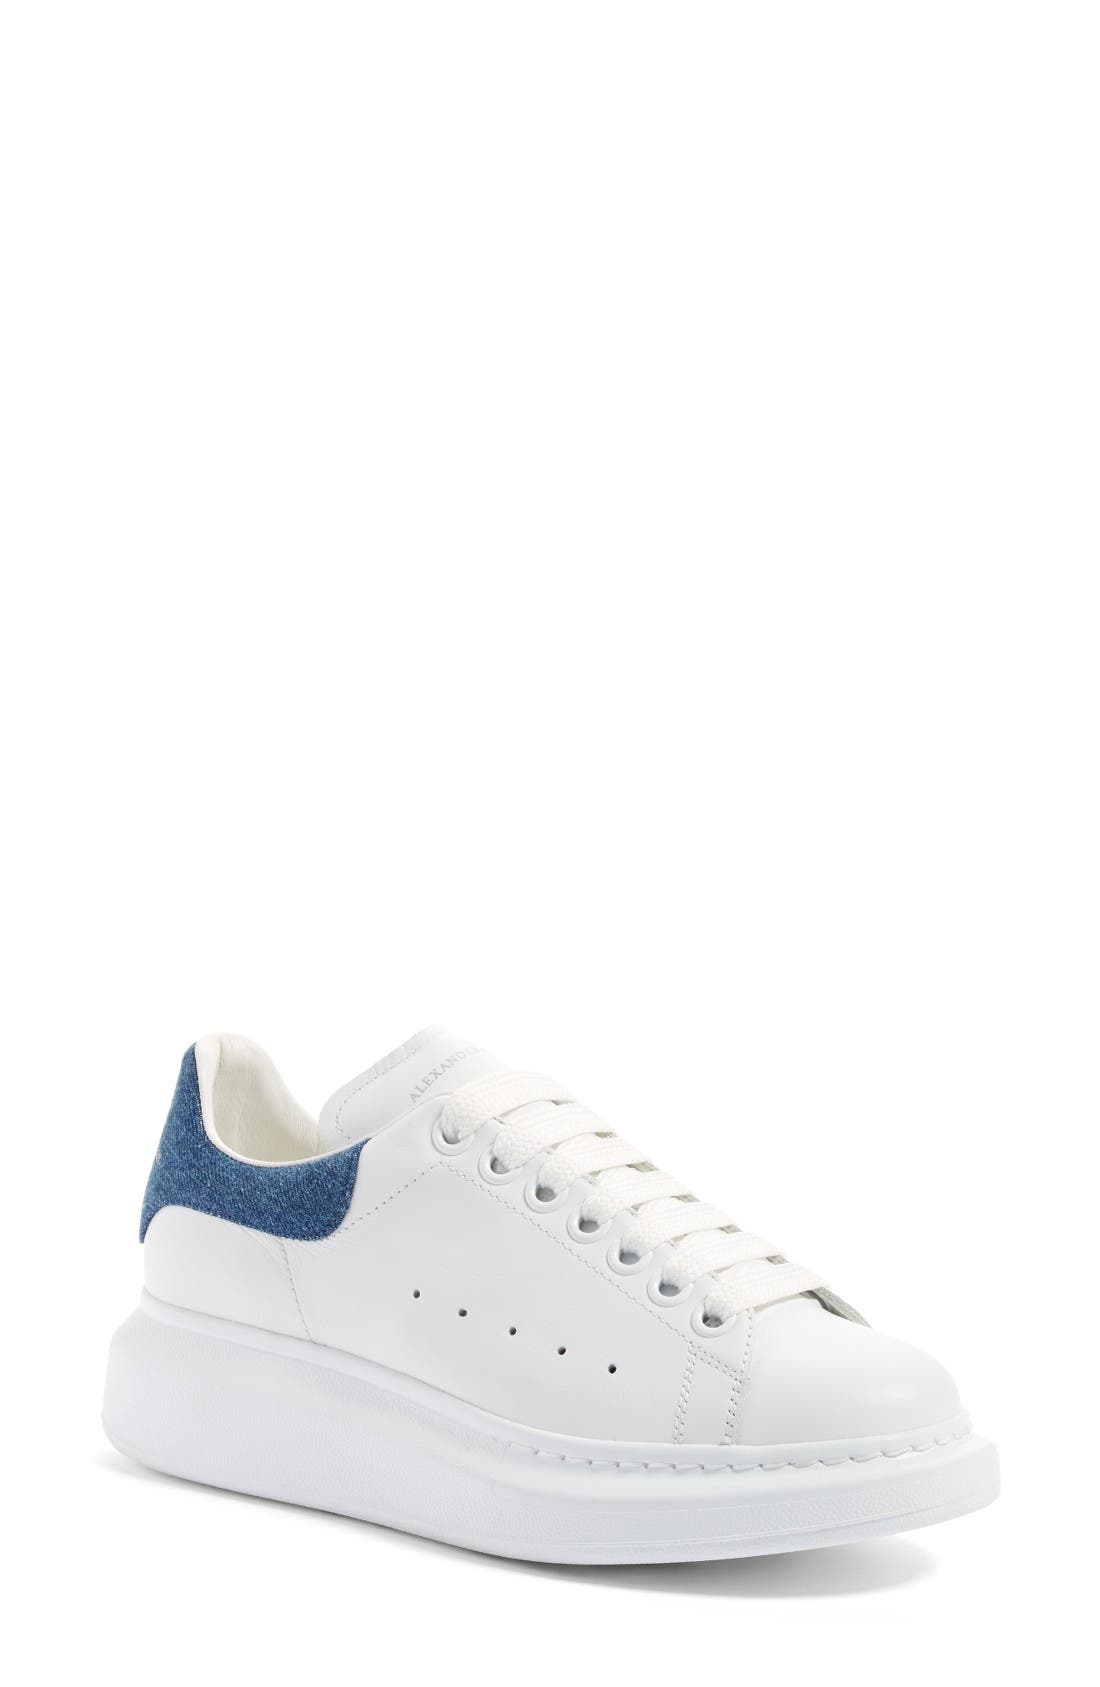 Alternate Image 1 Selected - Alexander McQueen Sneaker (Women)